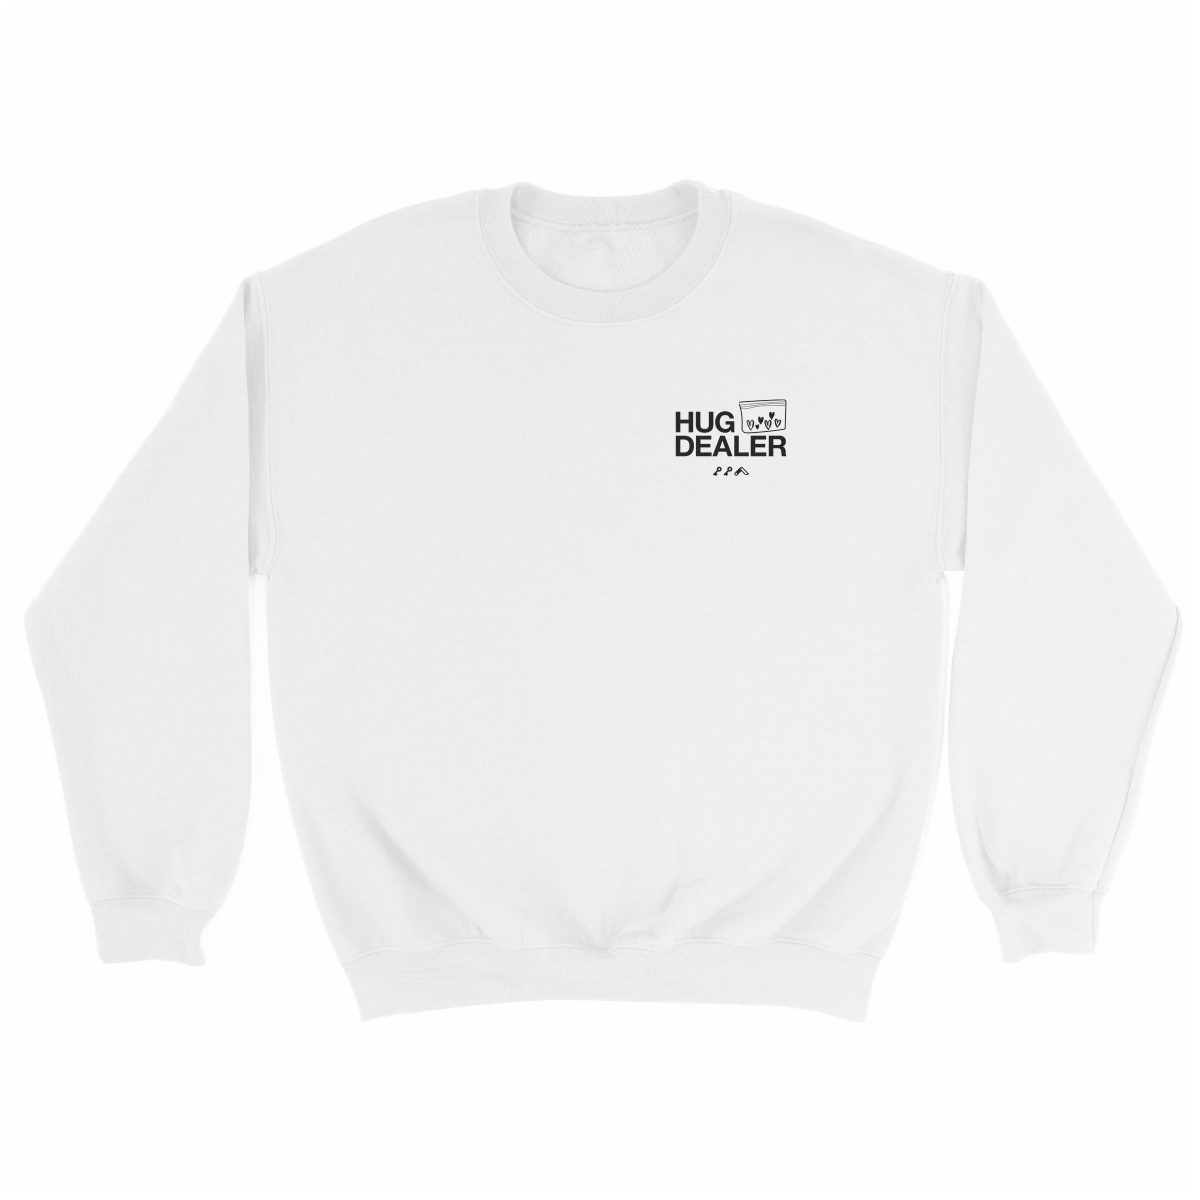 HUG DEALER sweatshirt in white by kikicutt sweatshirt store